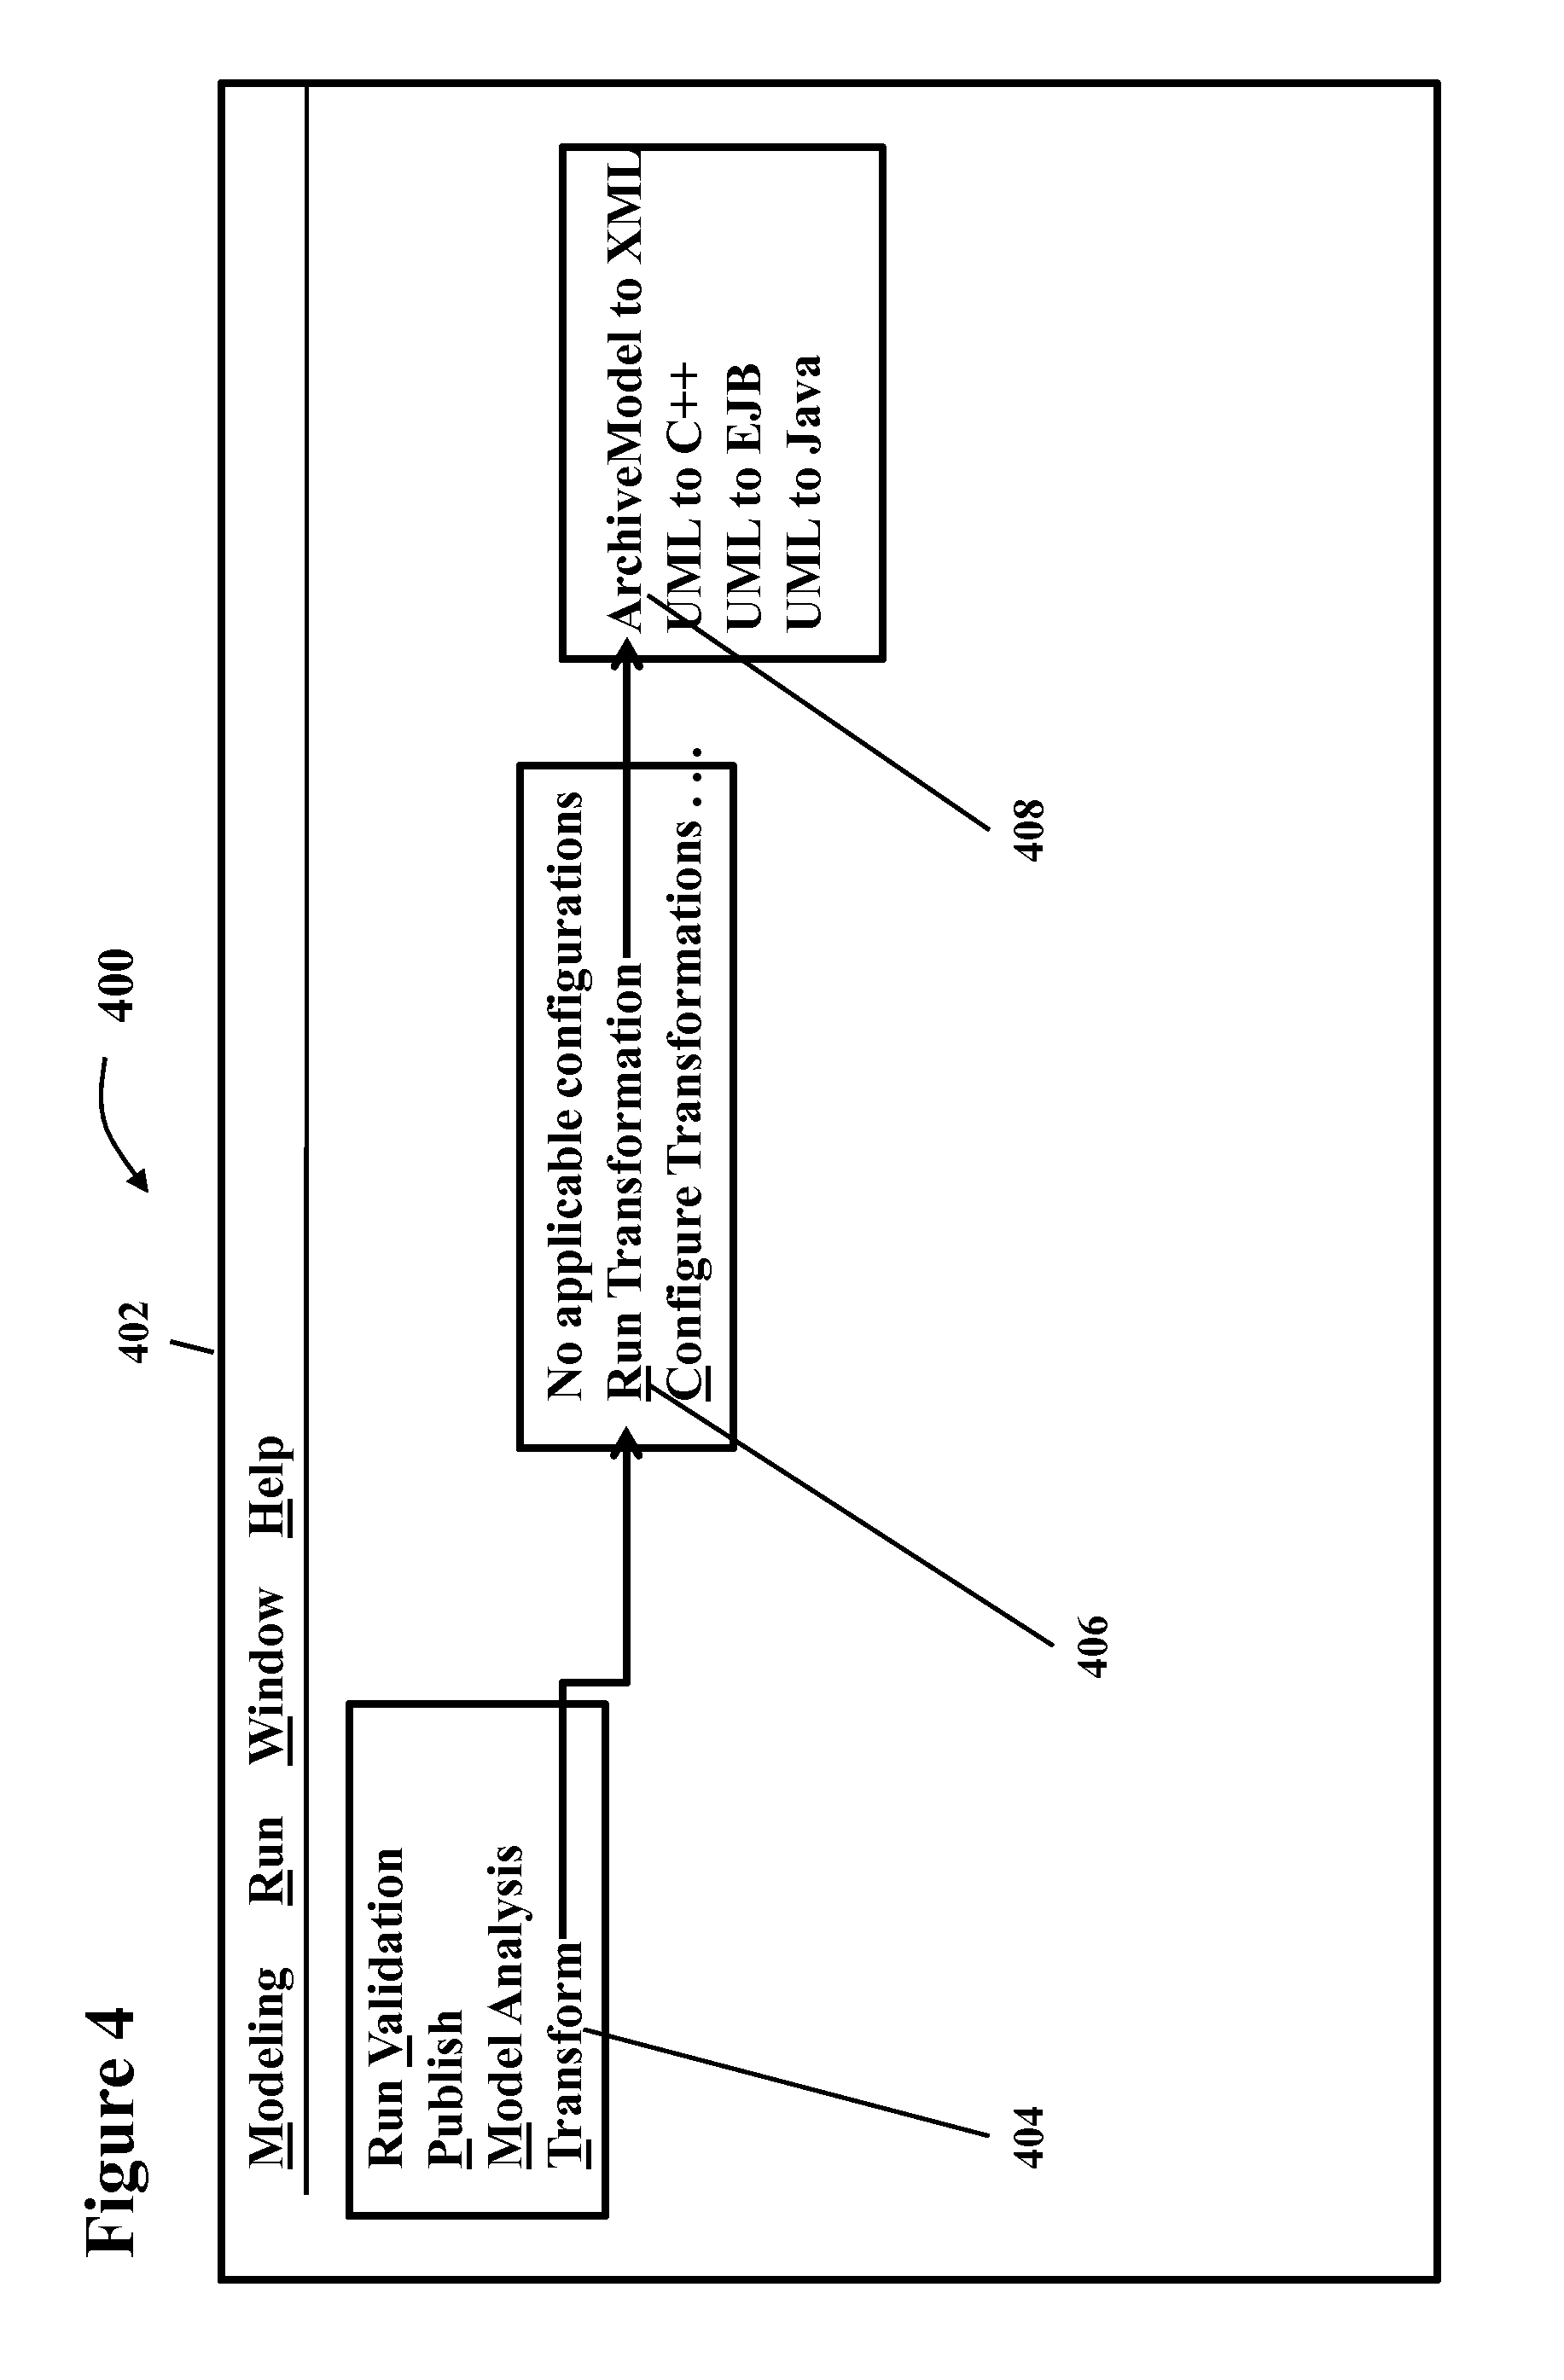 patent us20110137872 model driven data archival system having